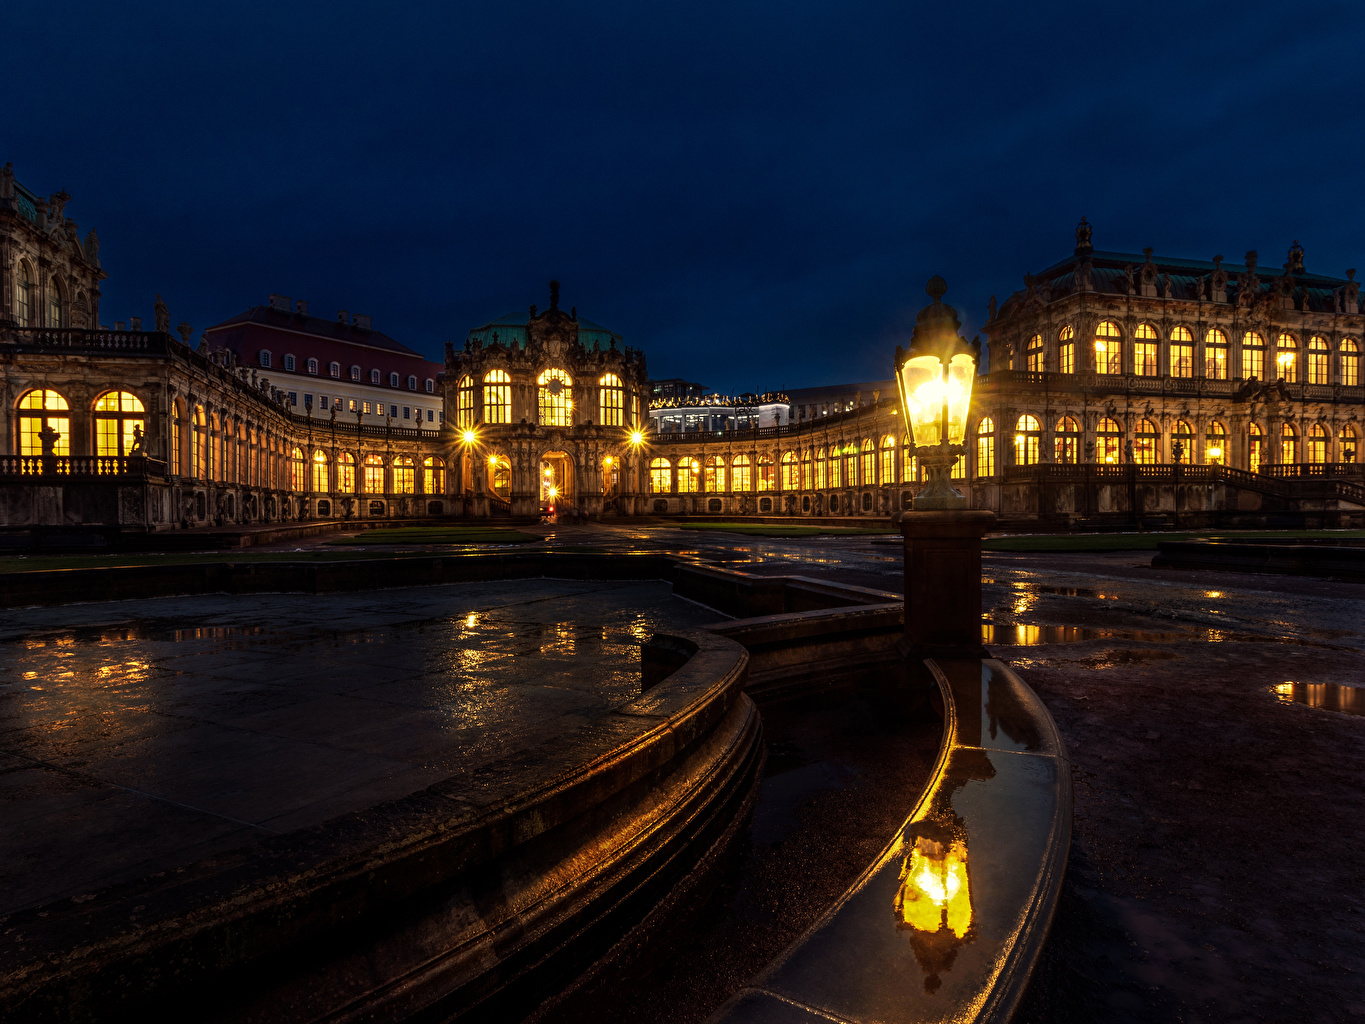 Wallpaper Dresden Germany Semperoper Reflection Night Street lights Cities Building Design reflected night time Houses